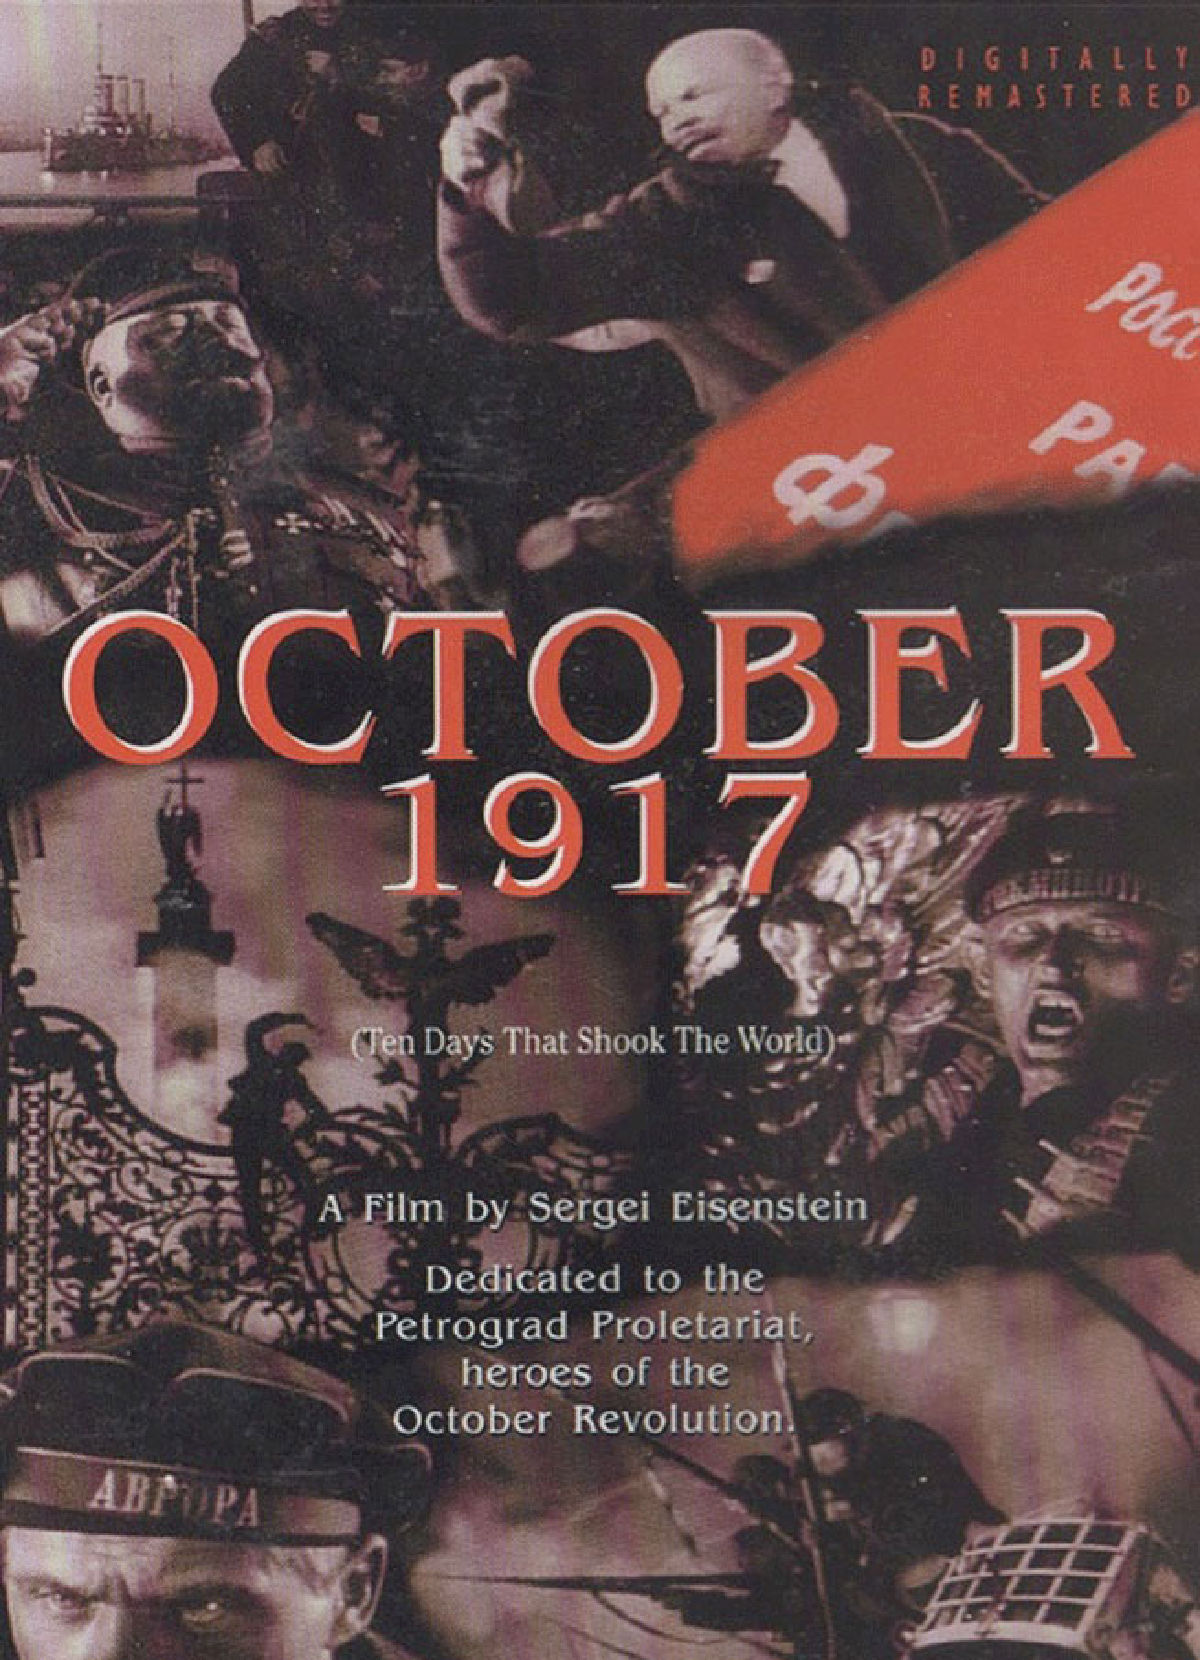 'October 1917 (Ten Days That Shook The World) (Oktyabr)' movie poster